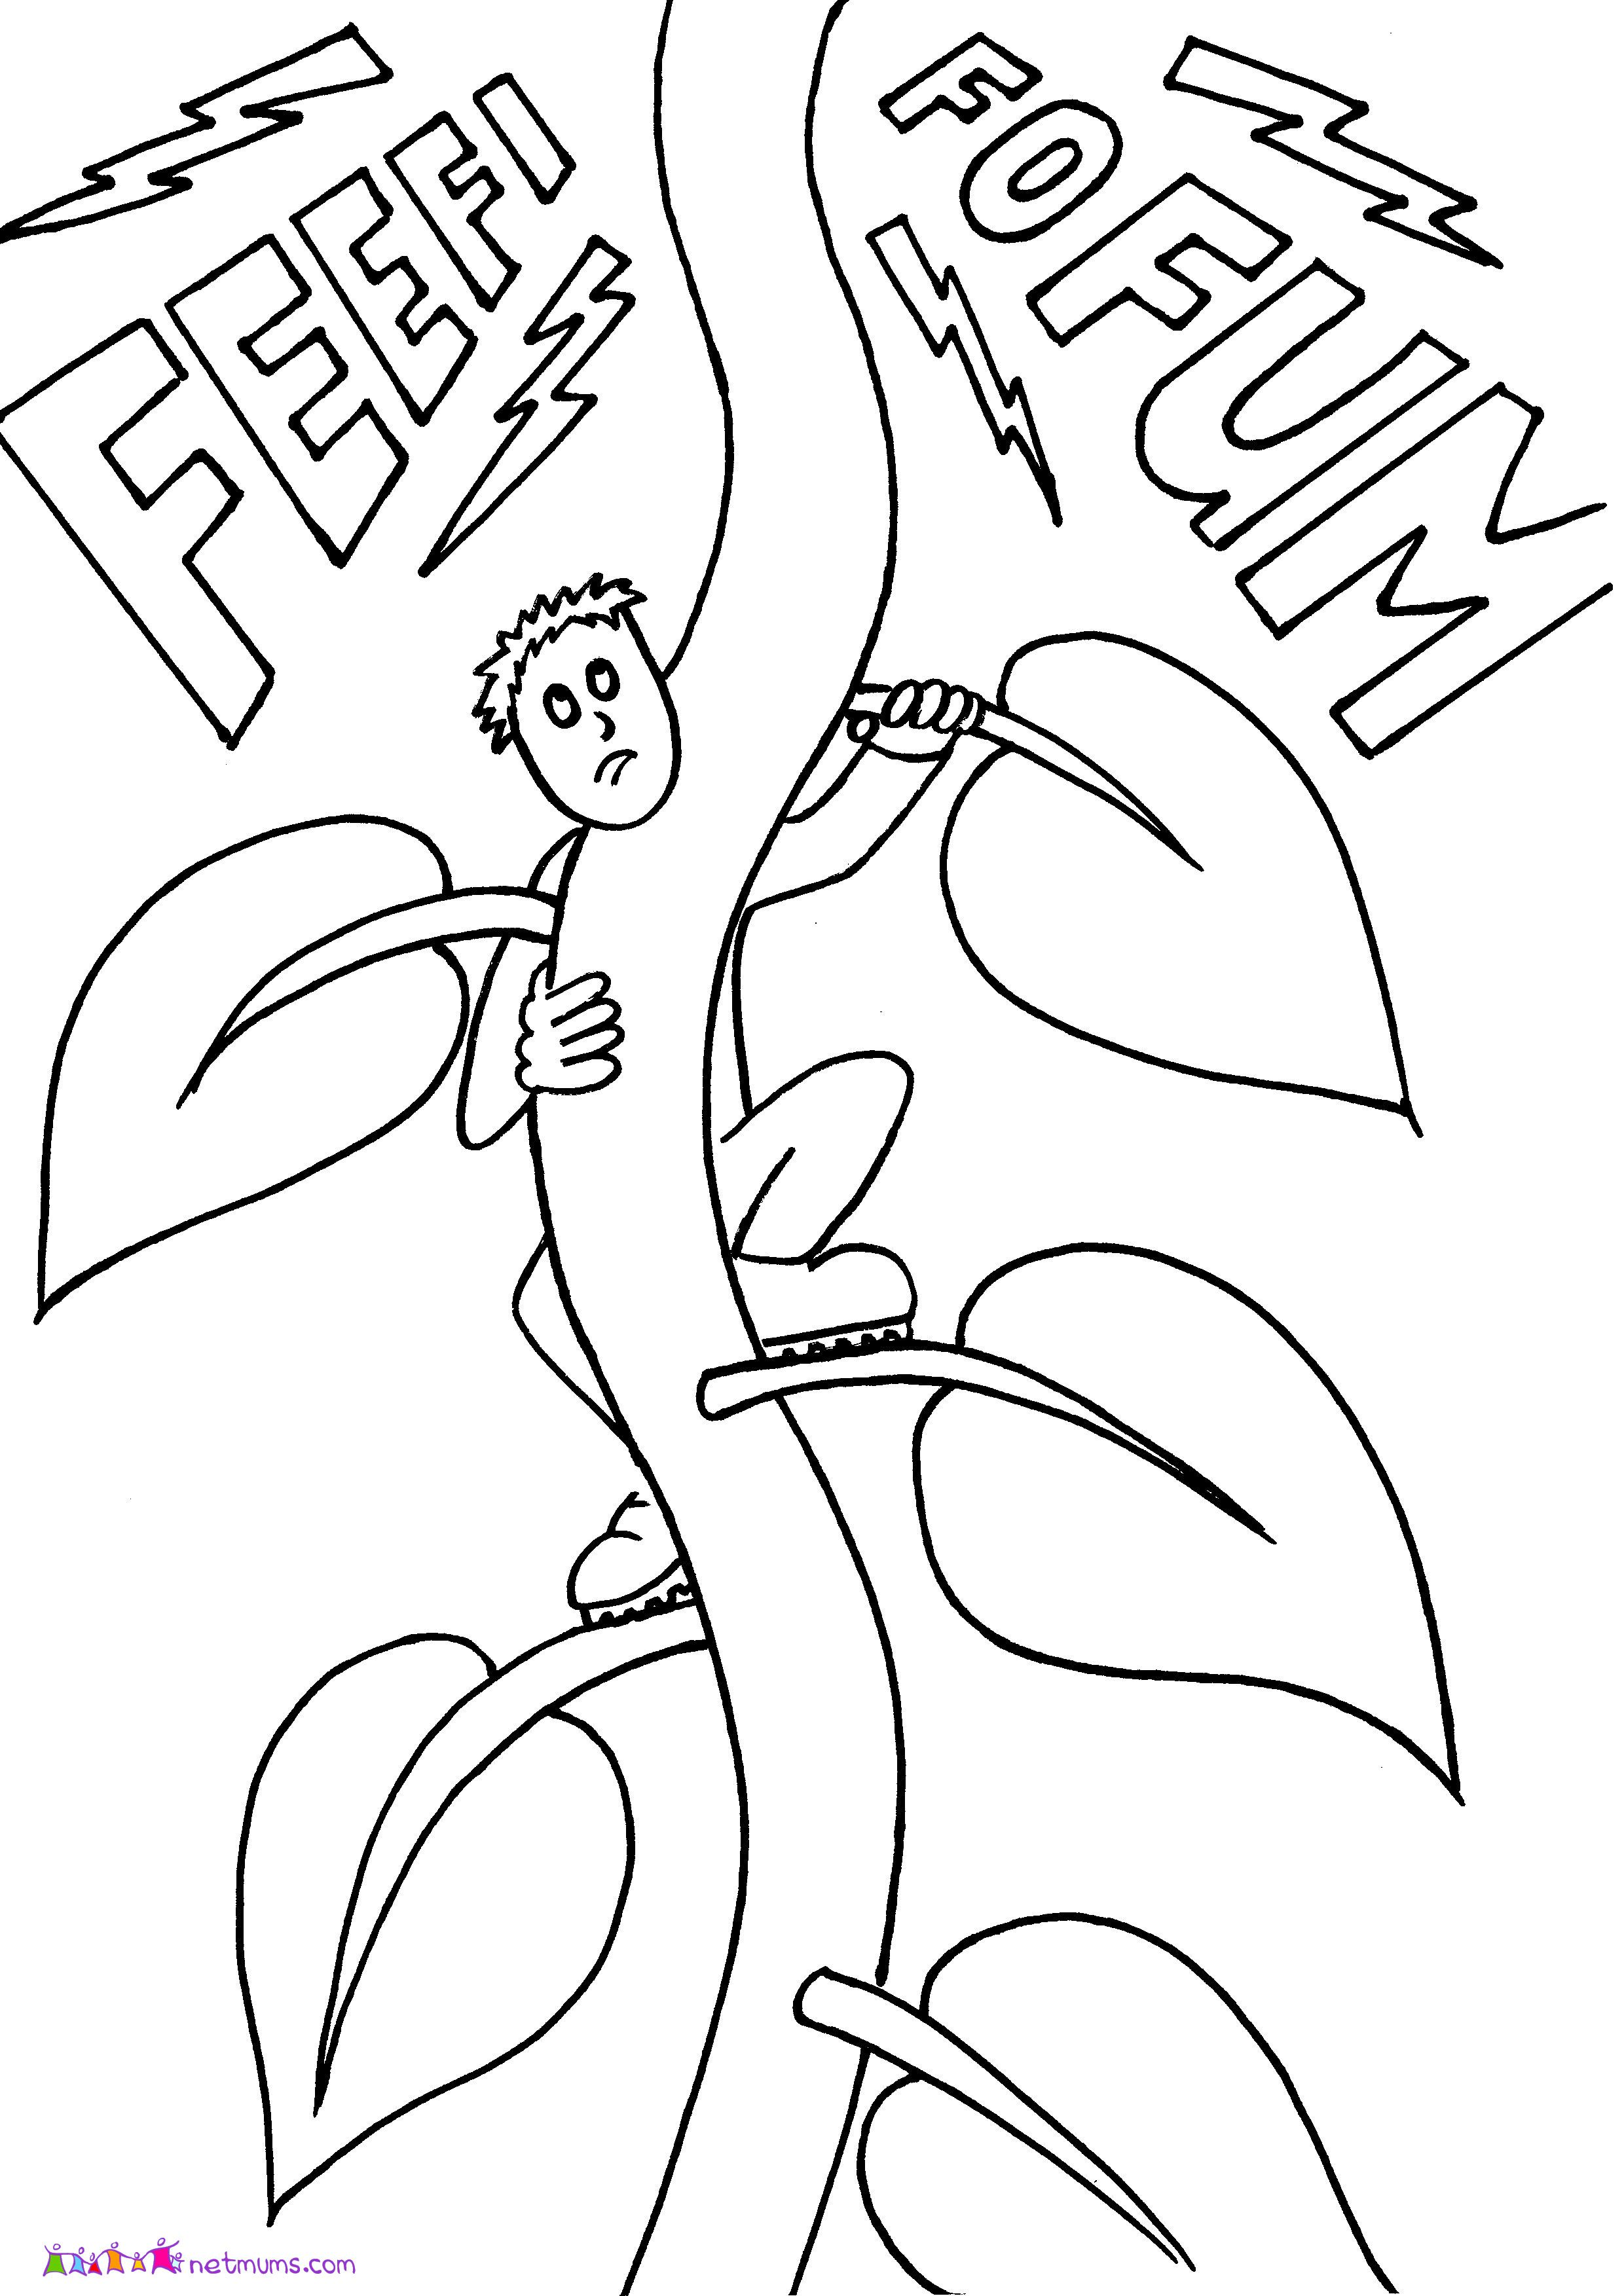 jack and the beanstalk colouring pictures jack beanstalk coloring pages pictures colouring the and beanstalk jack